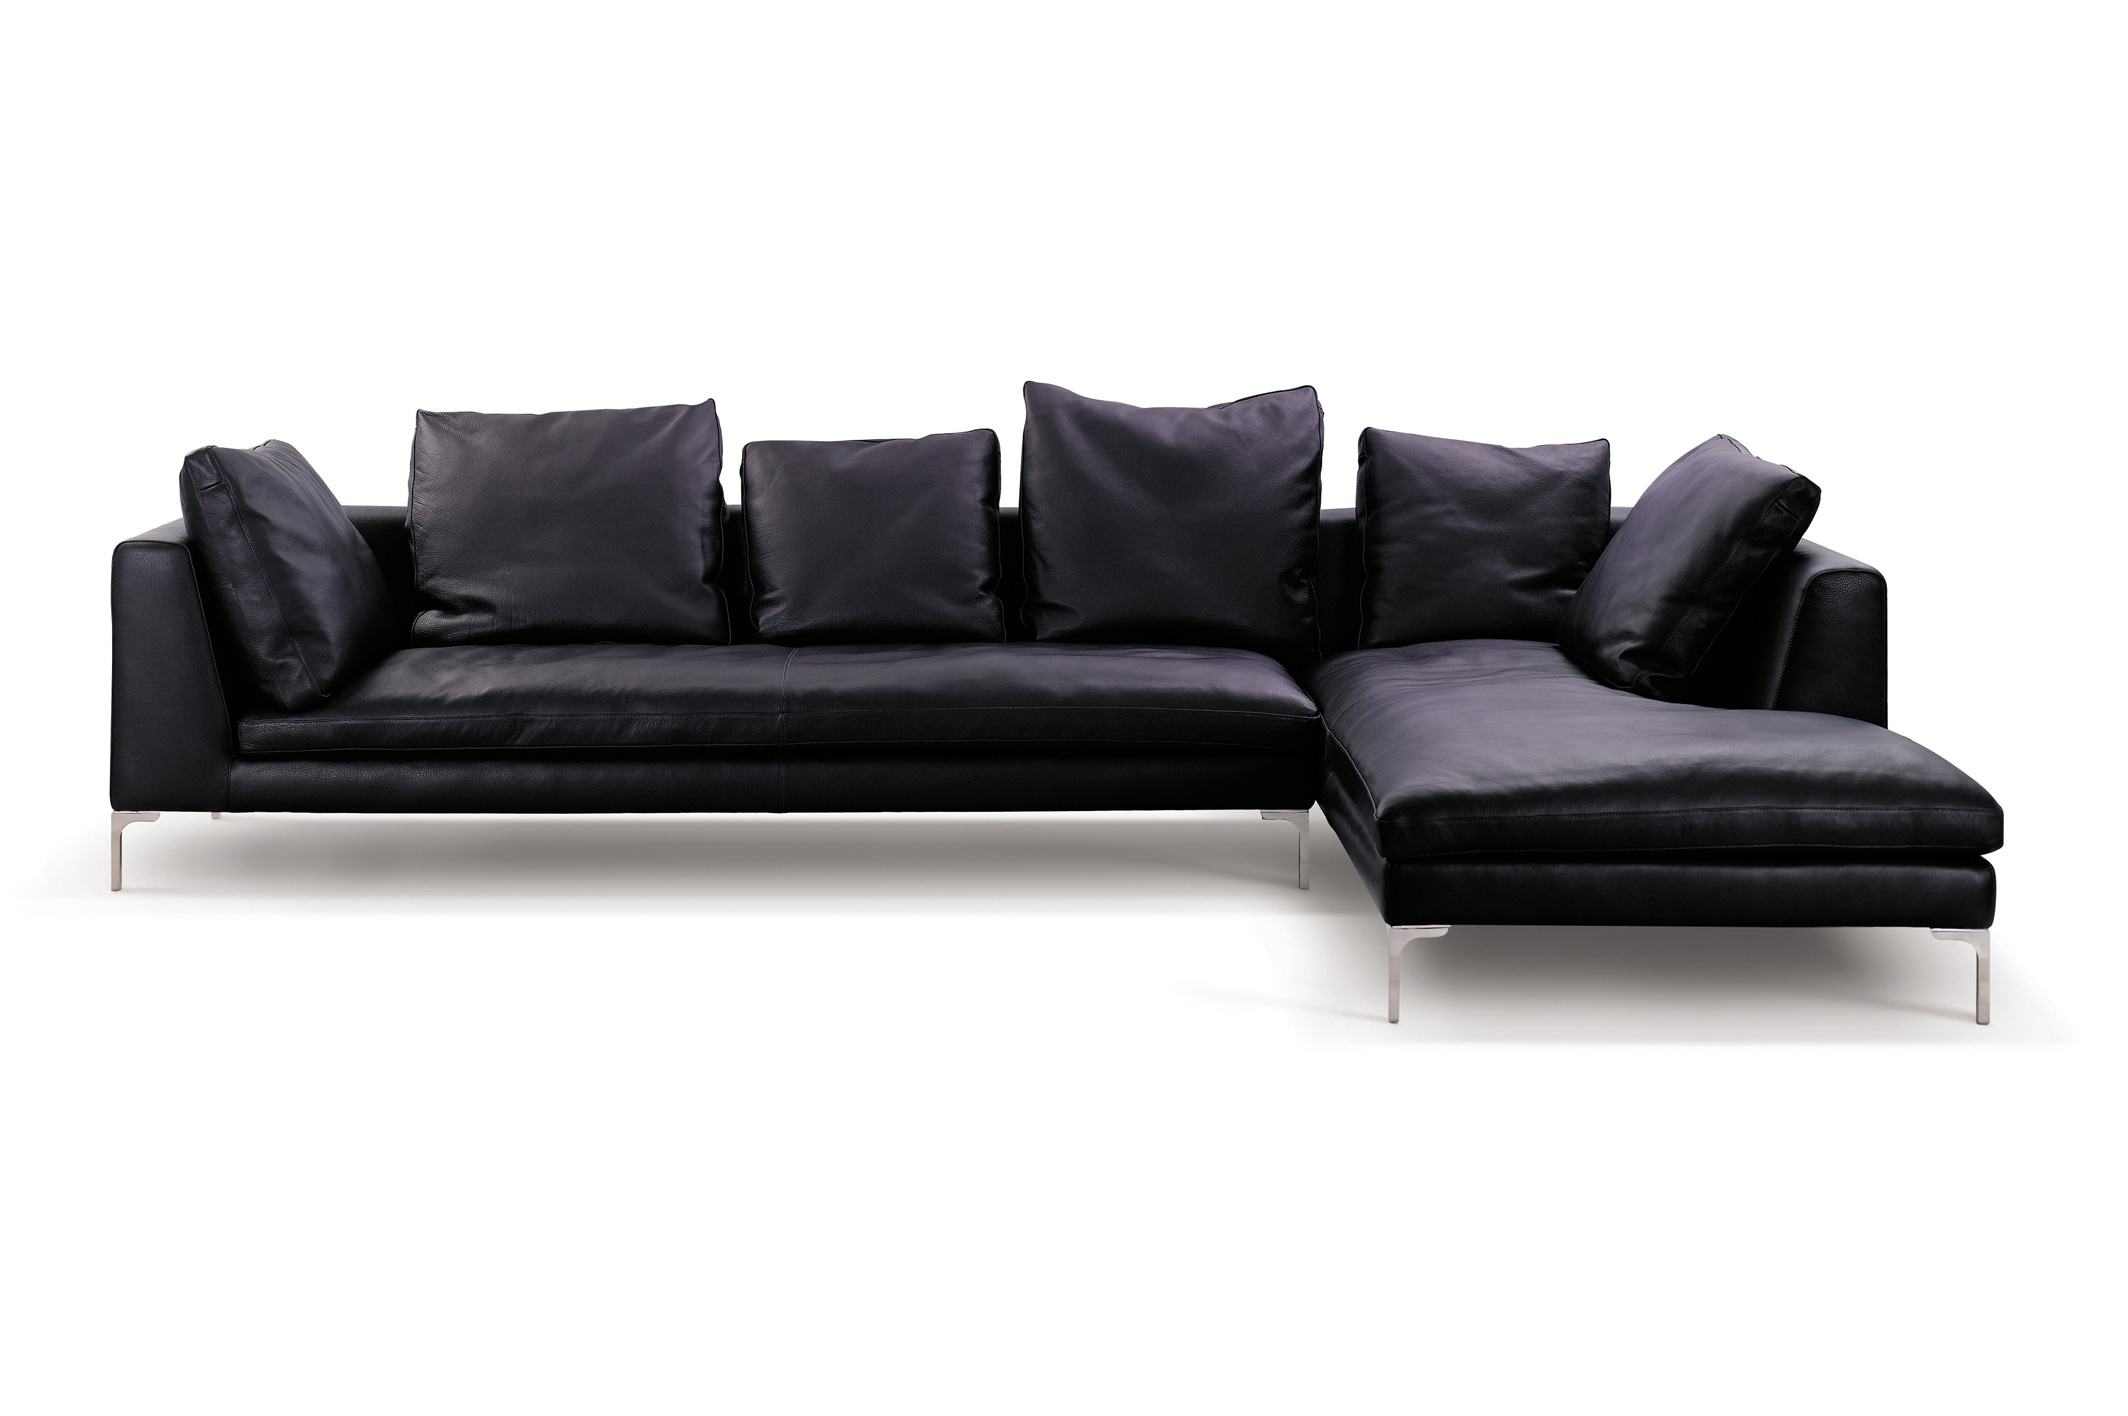 L Shaped Sofa Uk Leather With Chaise Sofas Designs India Minimalist in Sectional Sofas At Bangalore (Image 6 of 15)